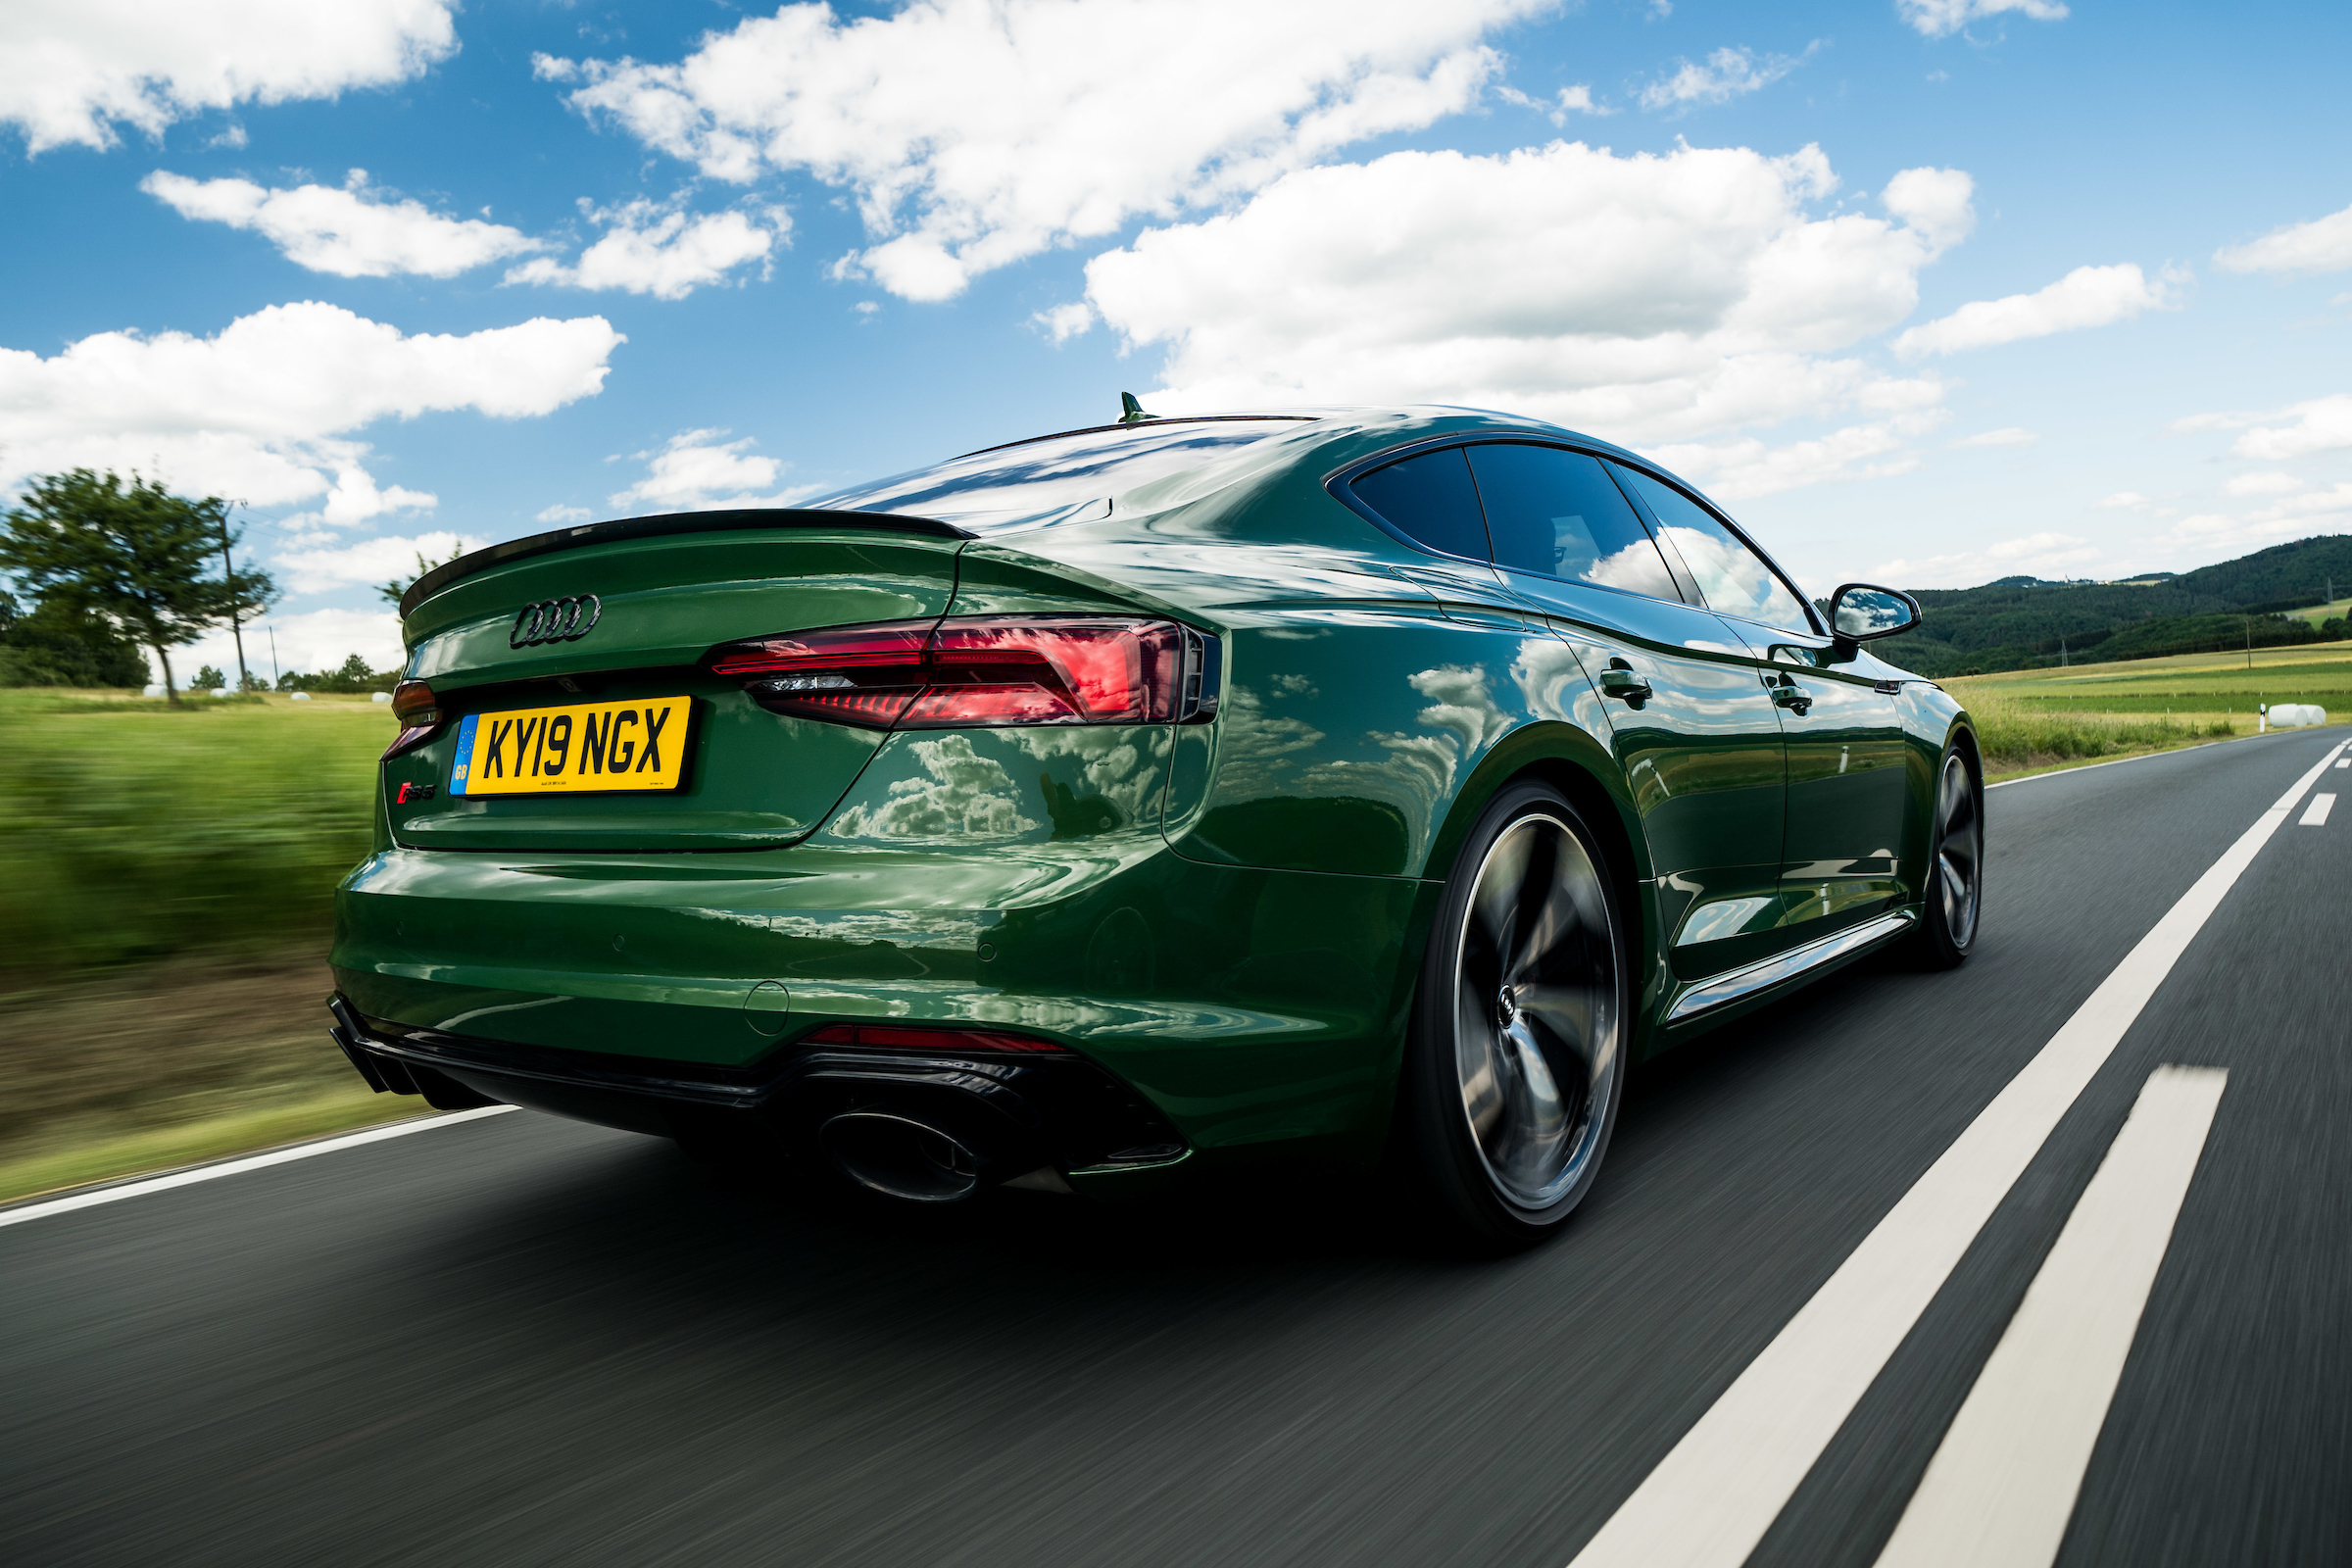 The RS5 rides well at speed